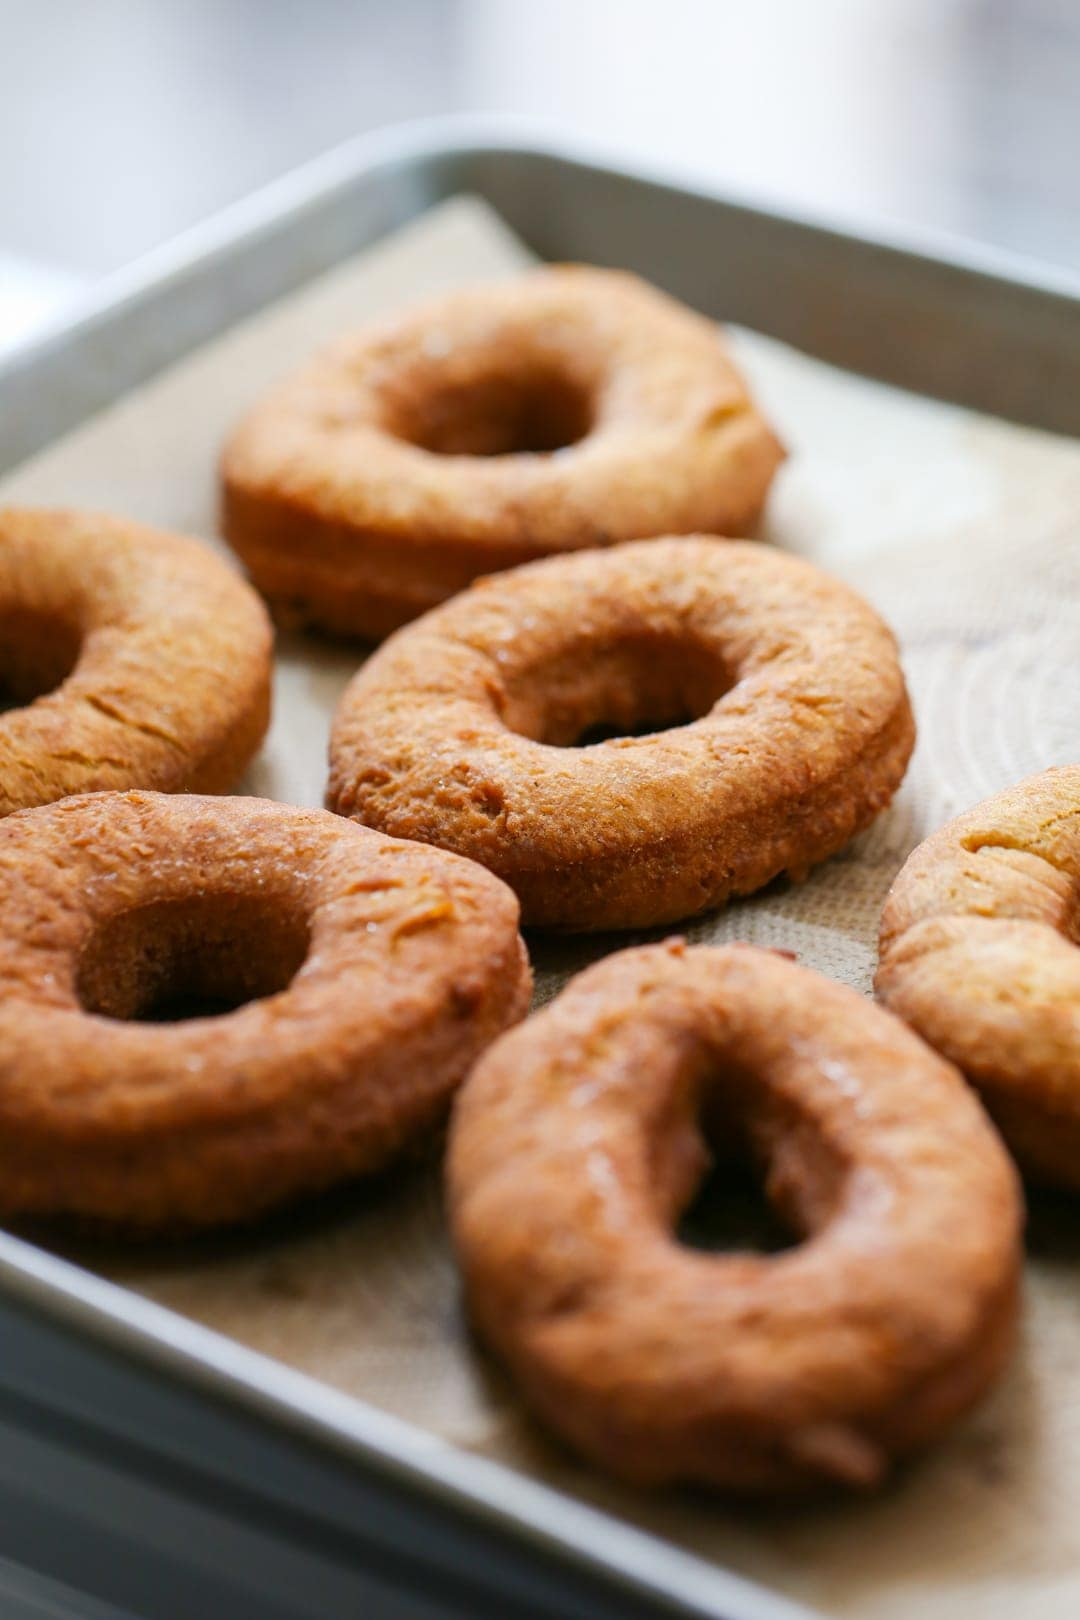 unglazed pumpkin donuts on paper towels